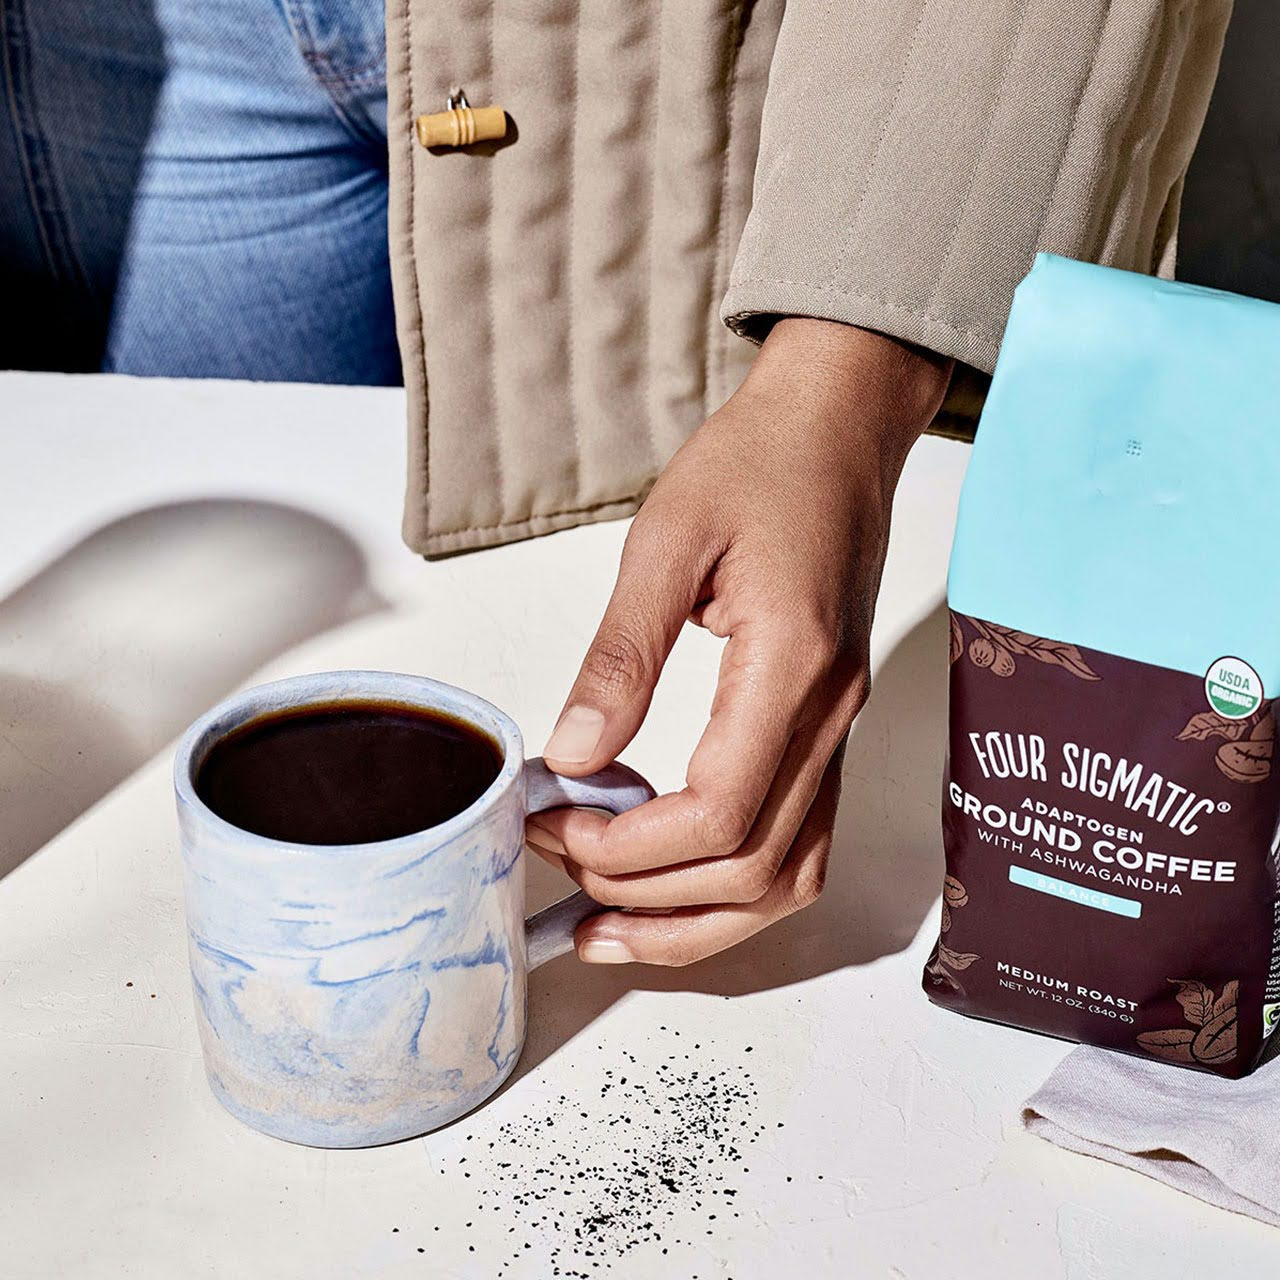 Cup of Four Sigmatic Adaptogen coffee